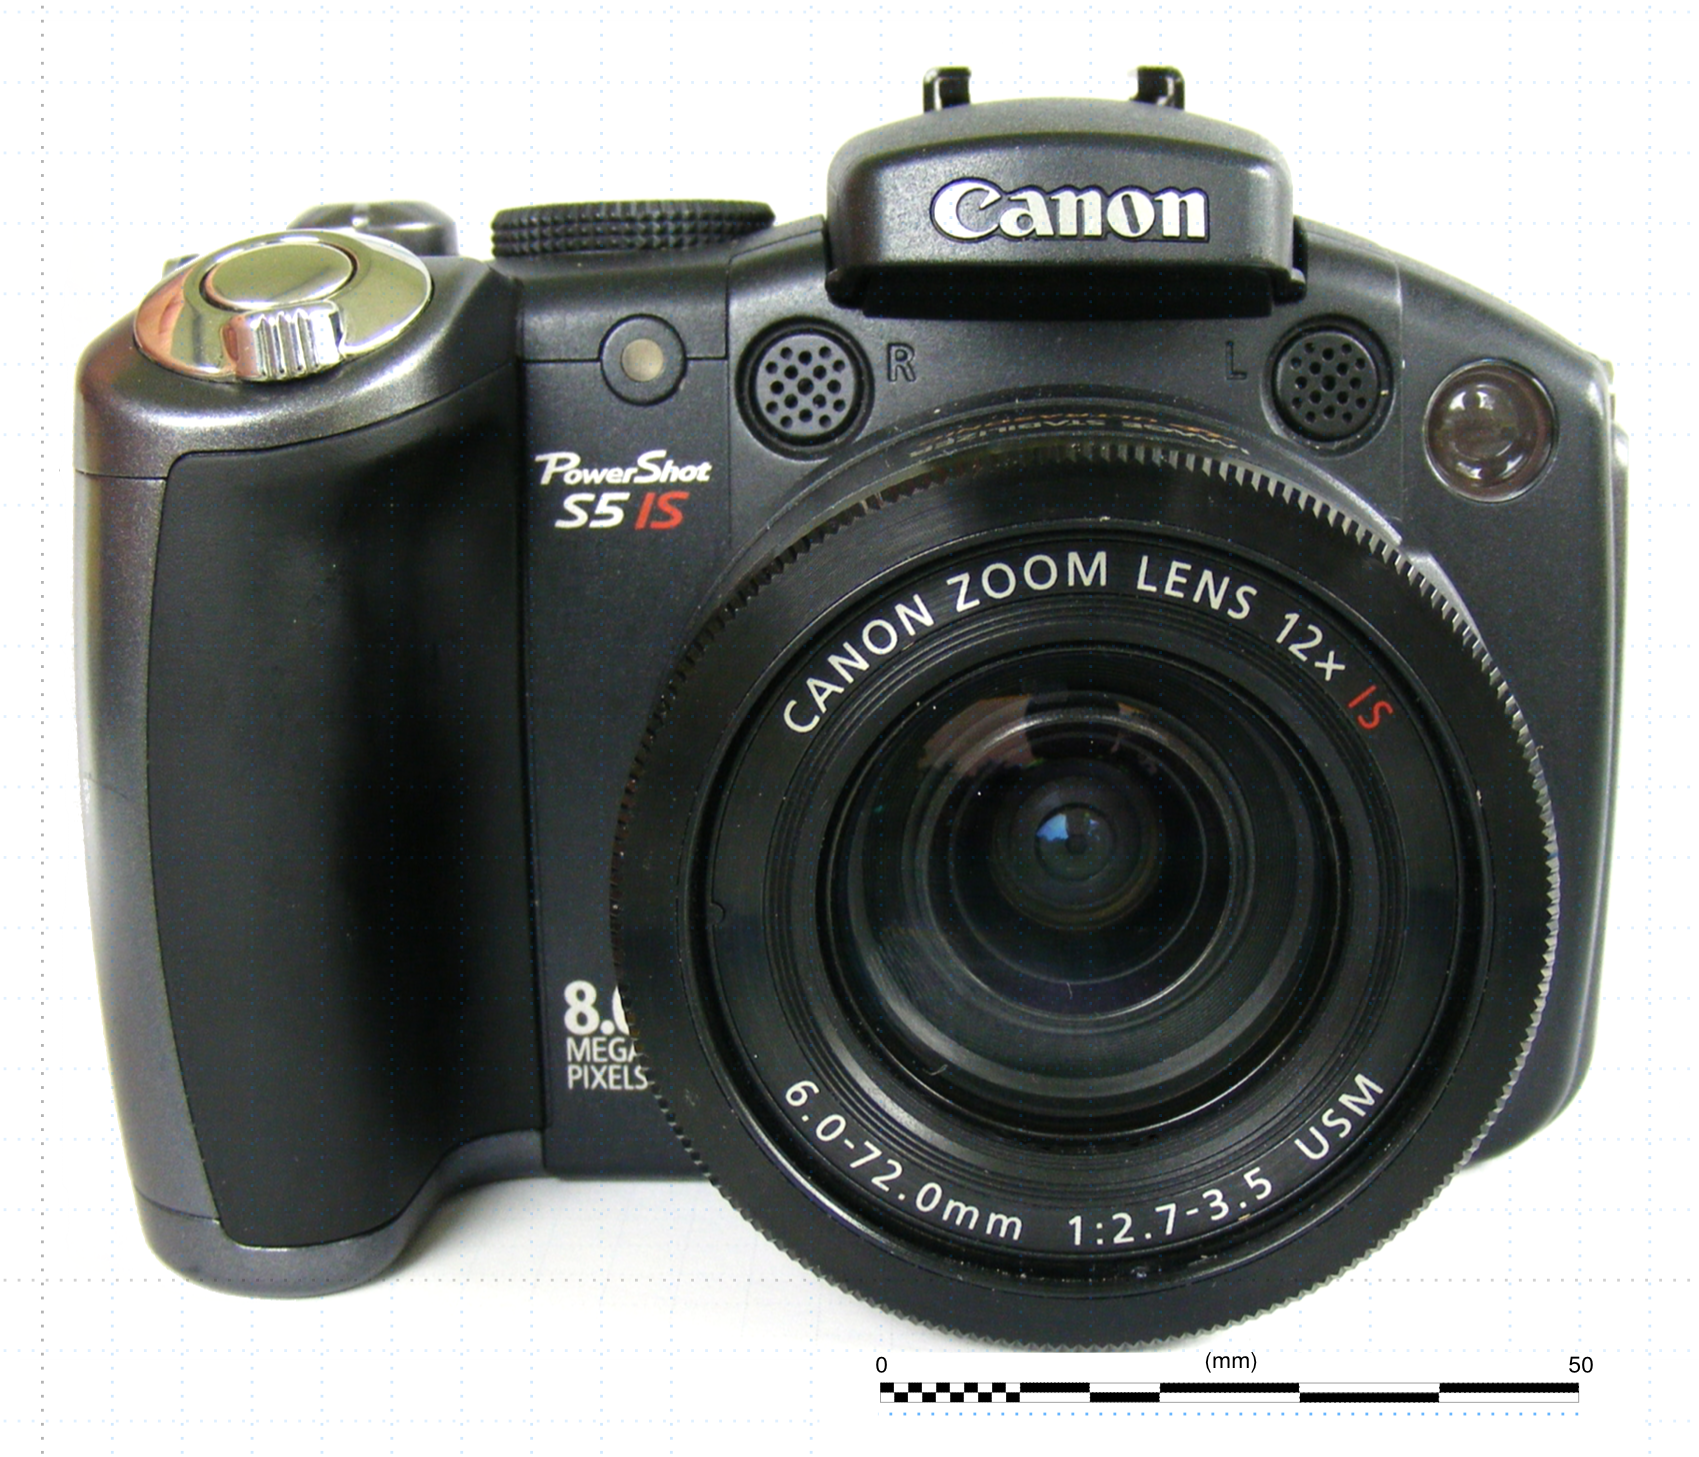 file canon powershot s5 is face png wikimedia commons rh commons wikimedia org canon powershot s5is user manual canon powershot s5is instruction manual